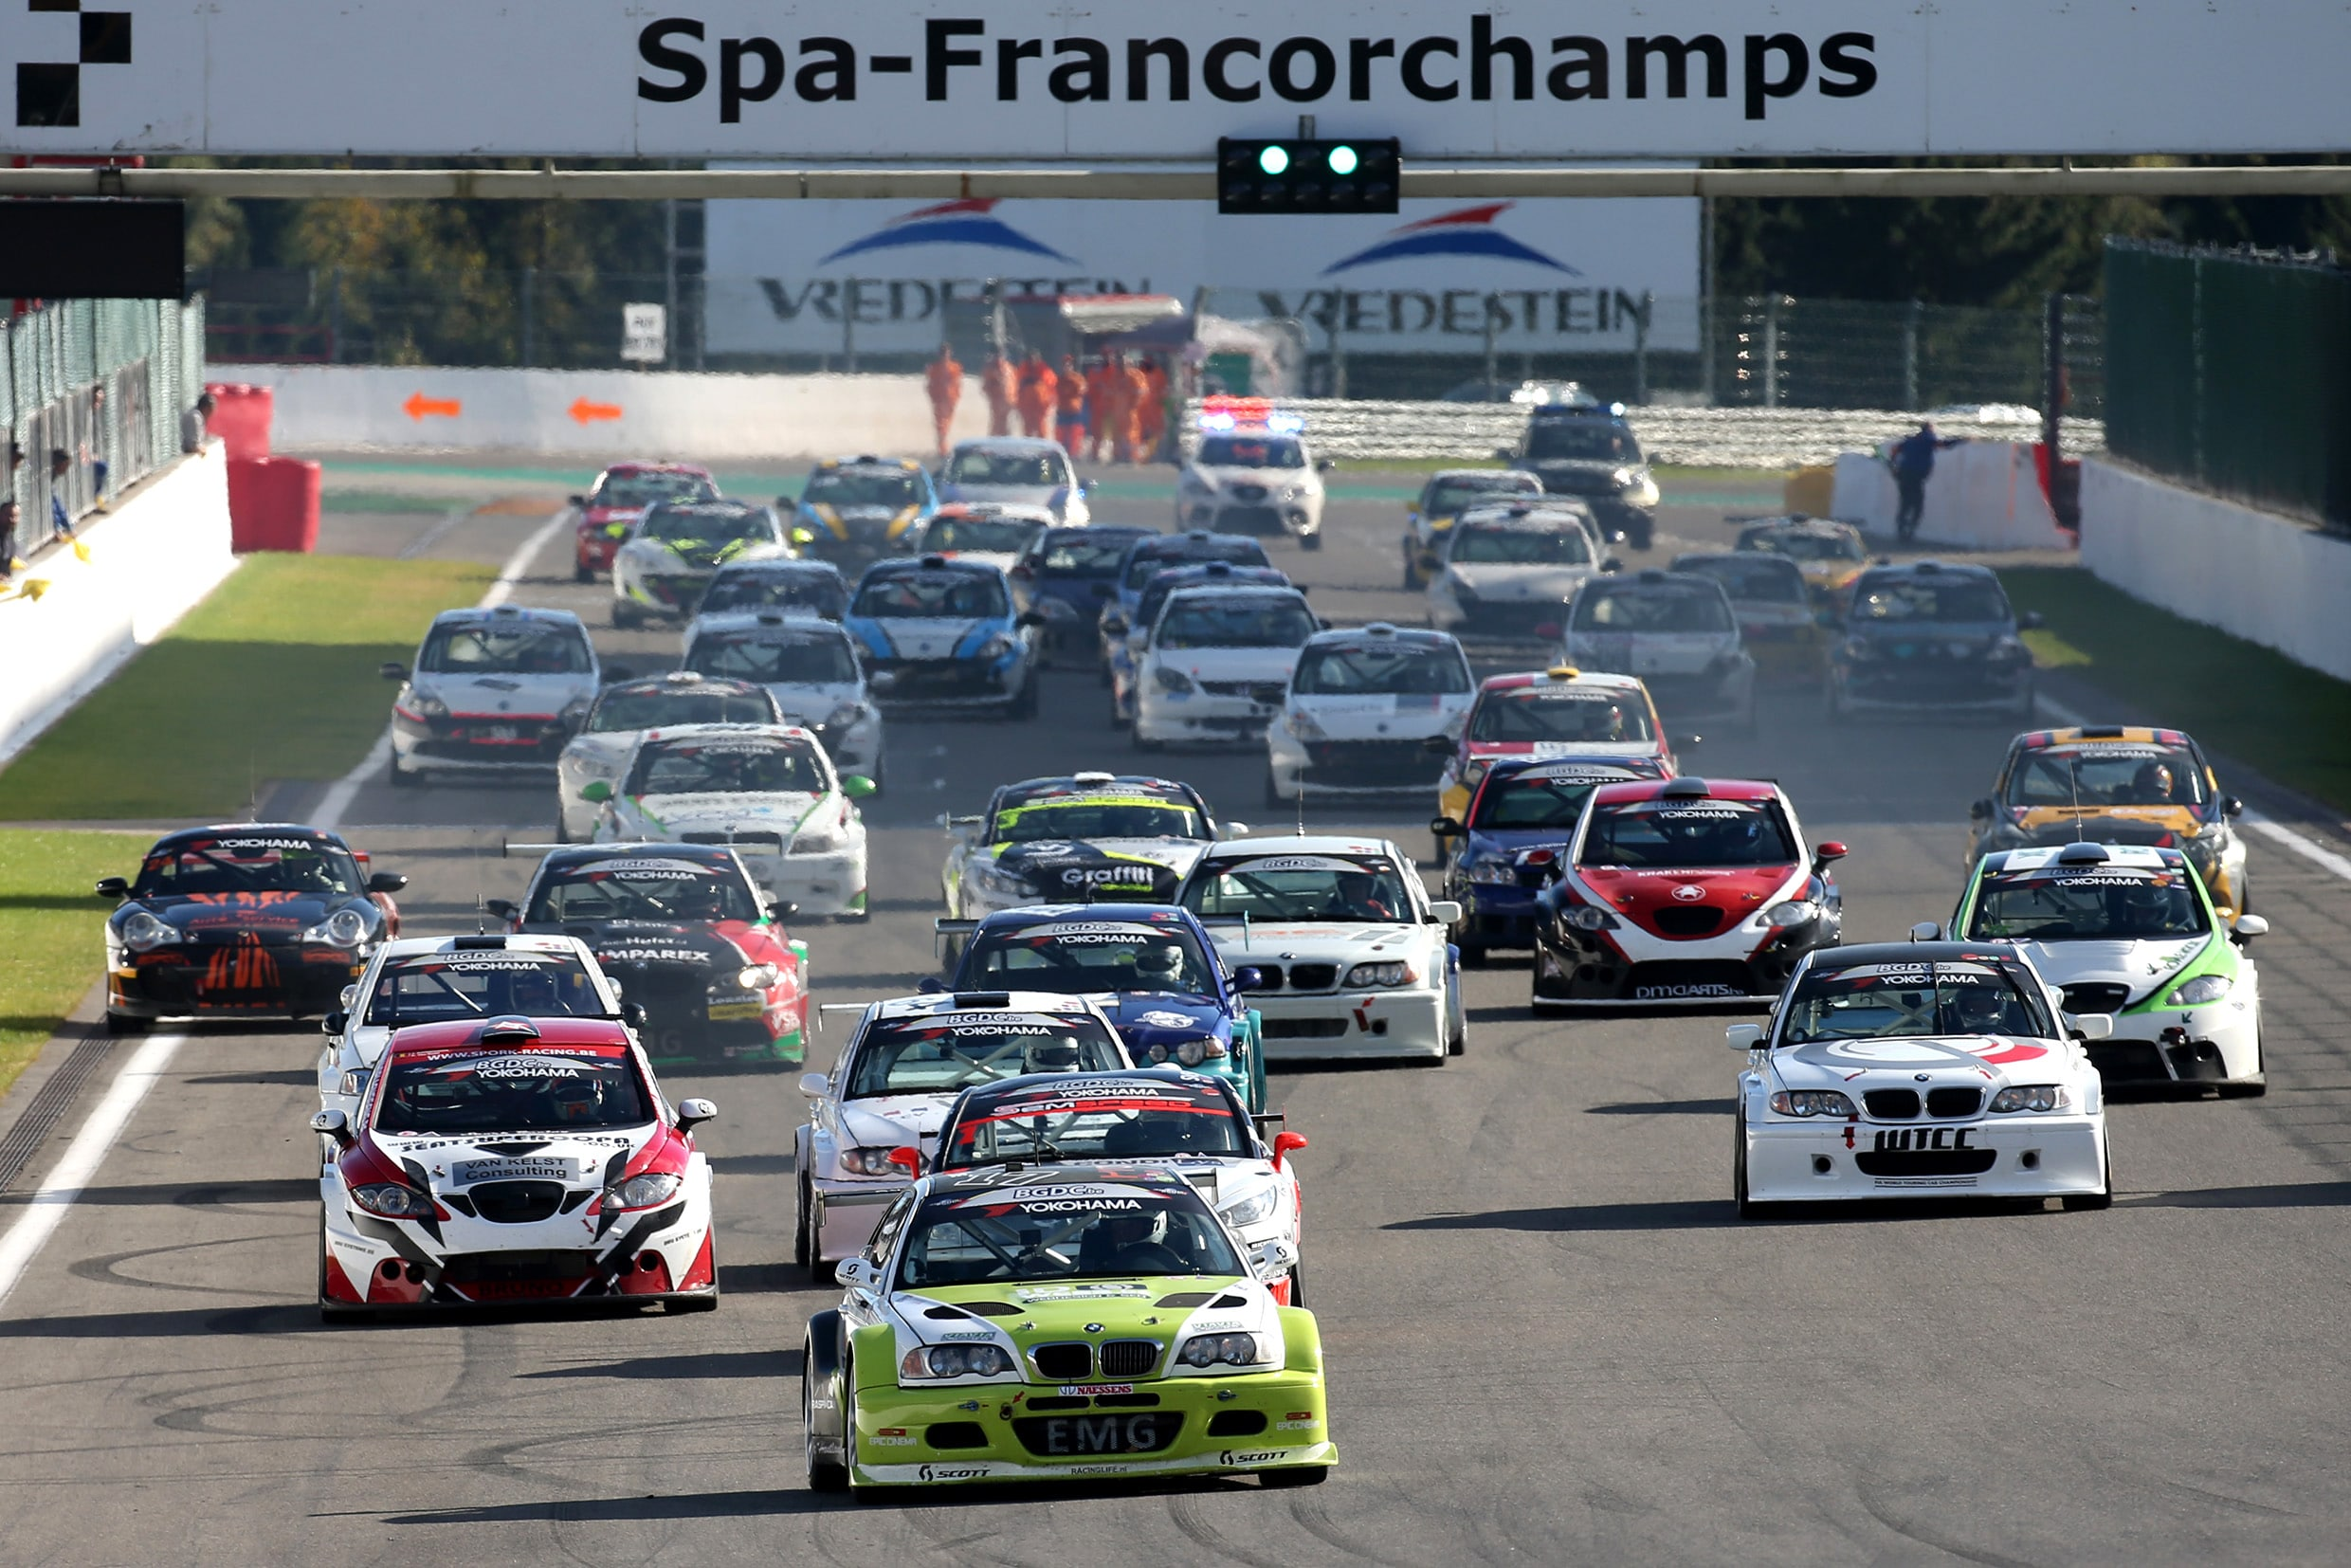 How to go racing at spa francorchamps